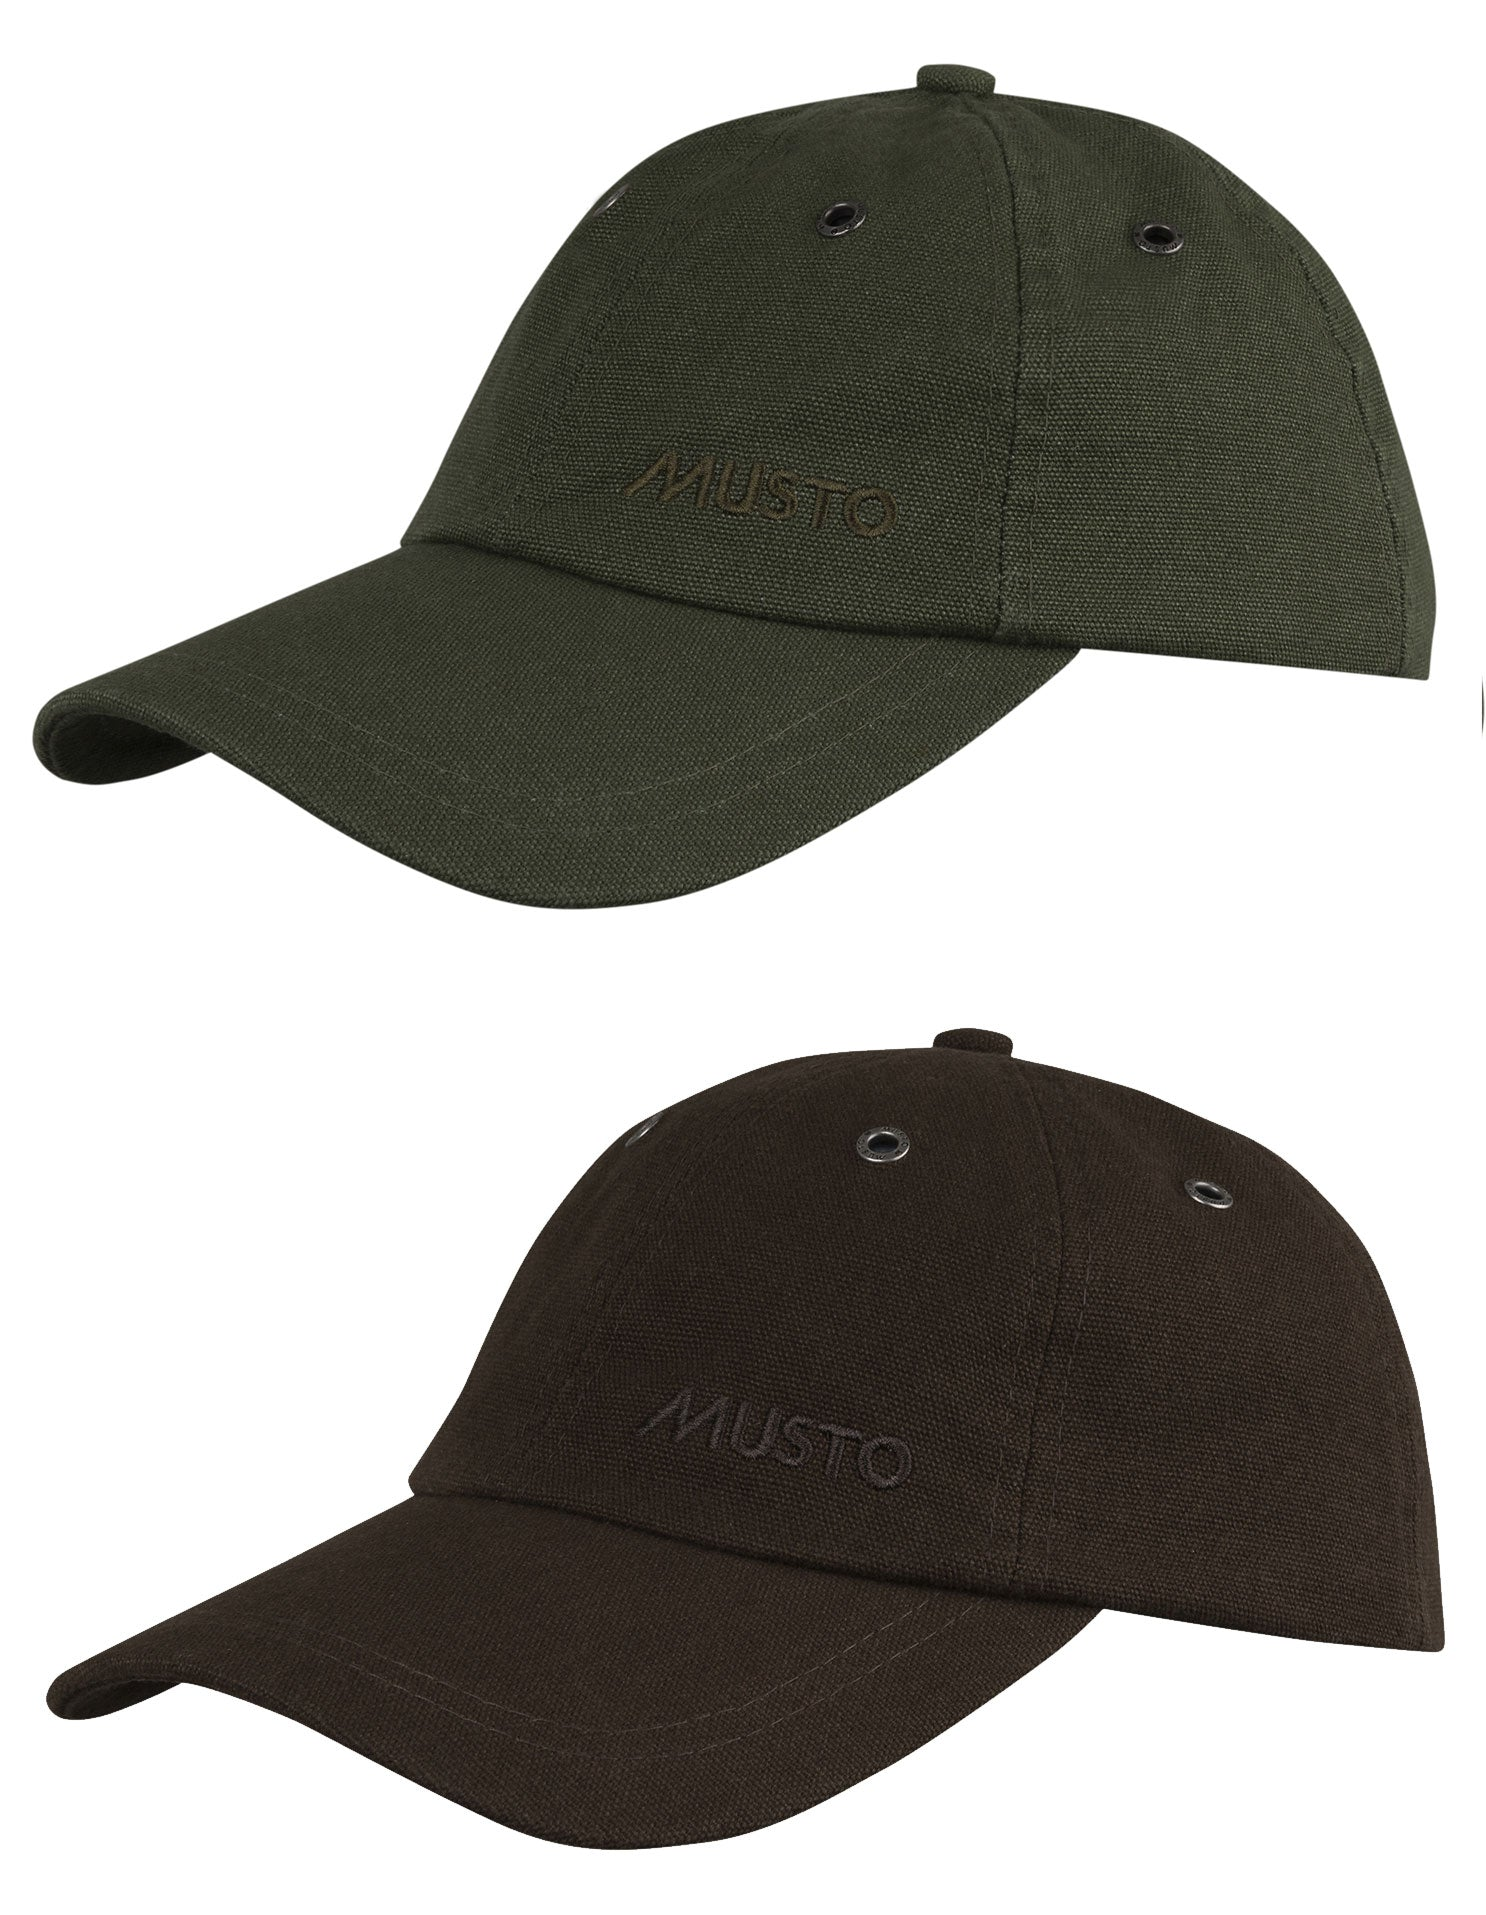 Musto Evolution Canvas Crew Cap | Dark Brown & Dark Moss